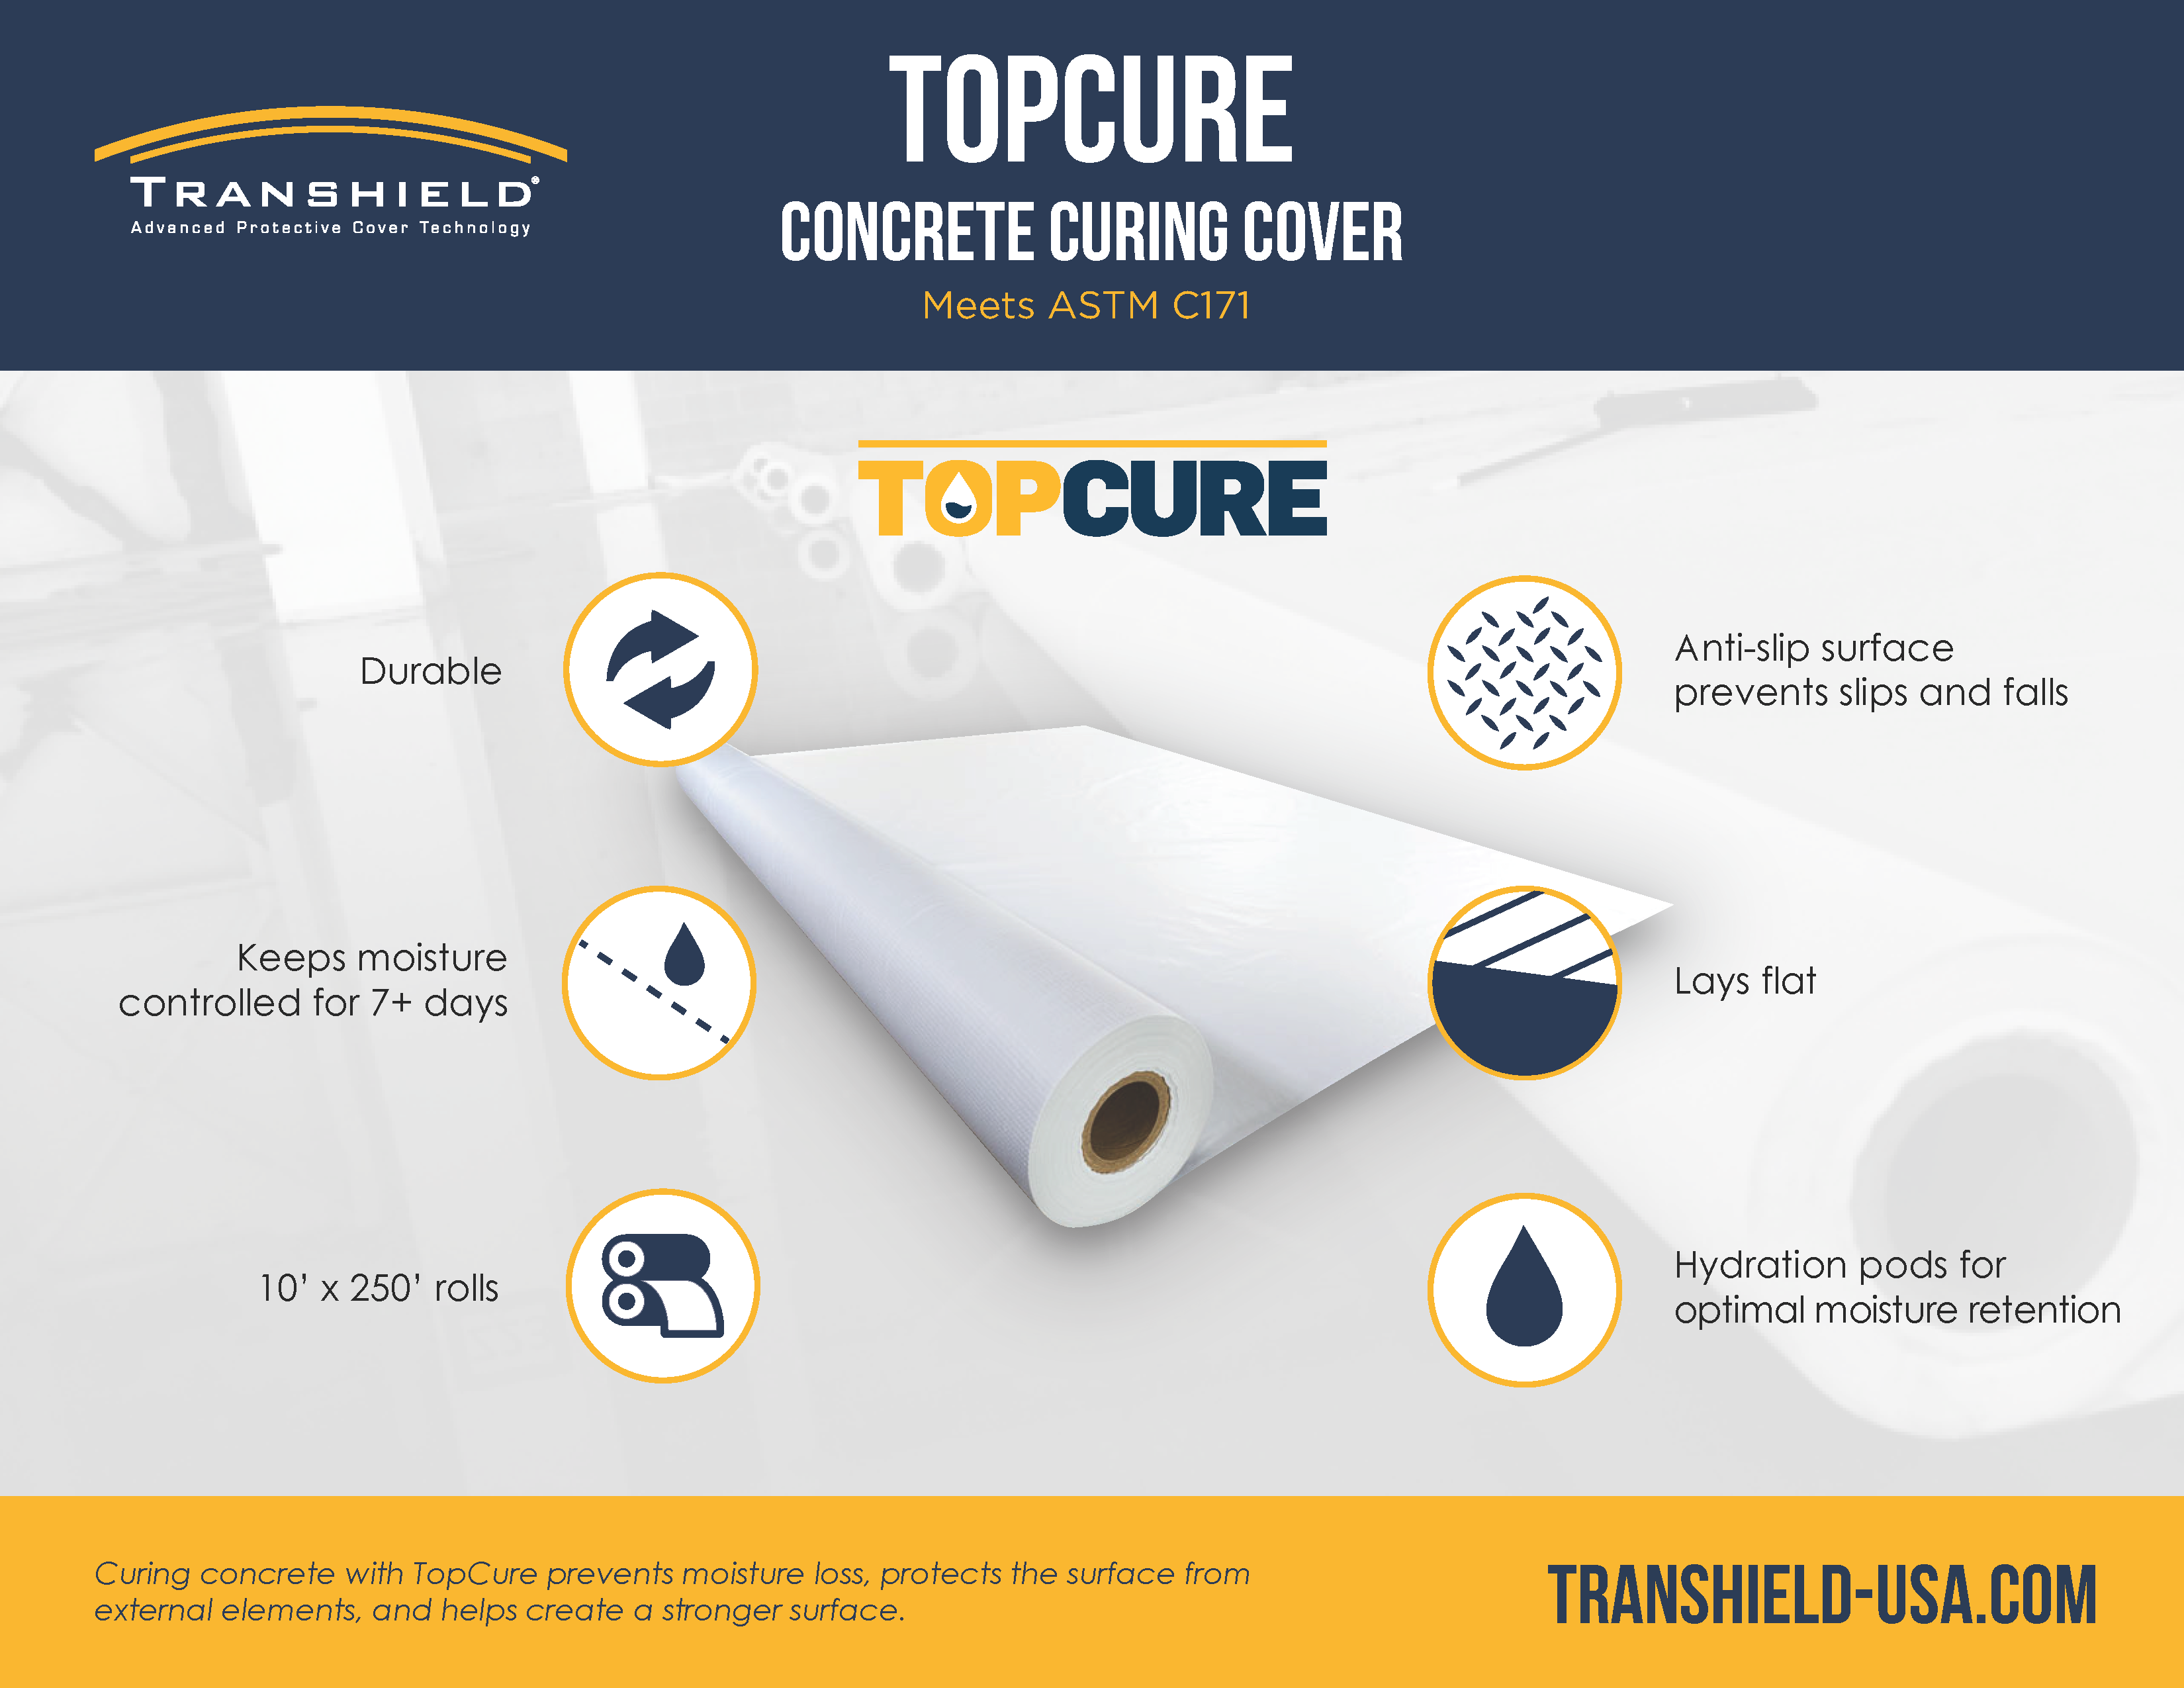 TopCure Concrete Curing Cover